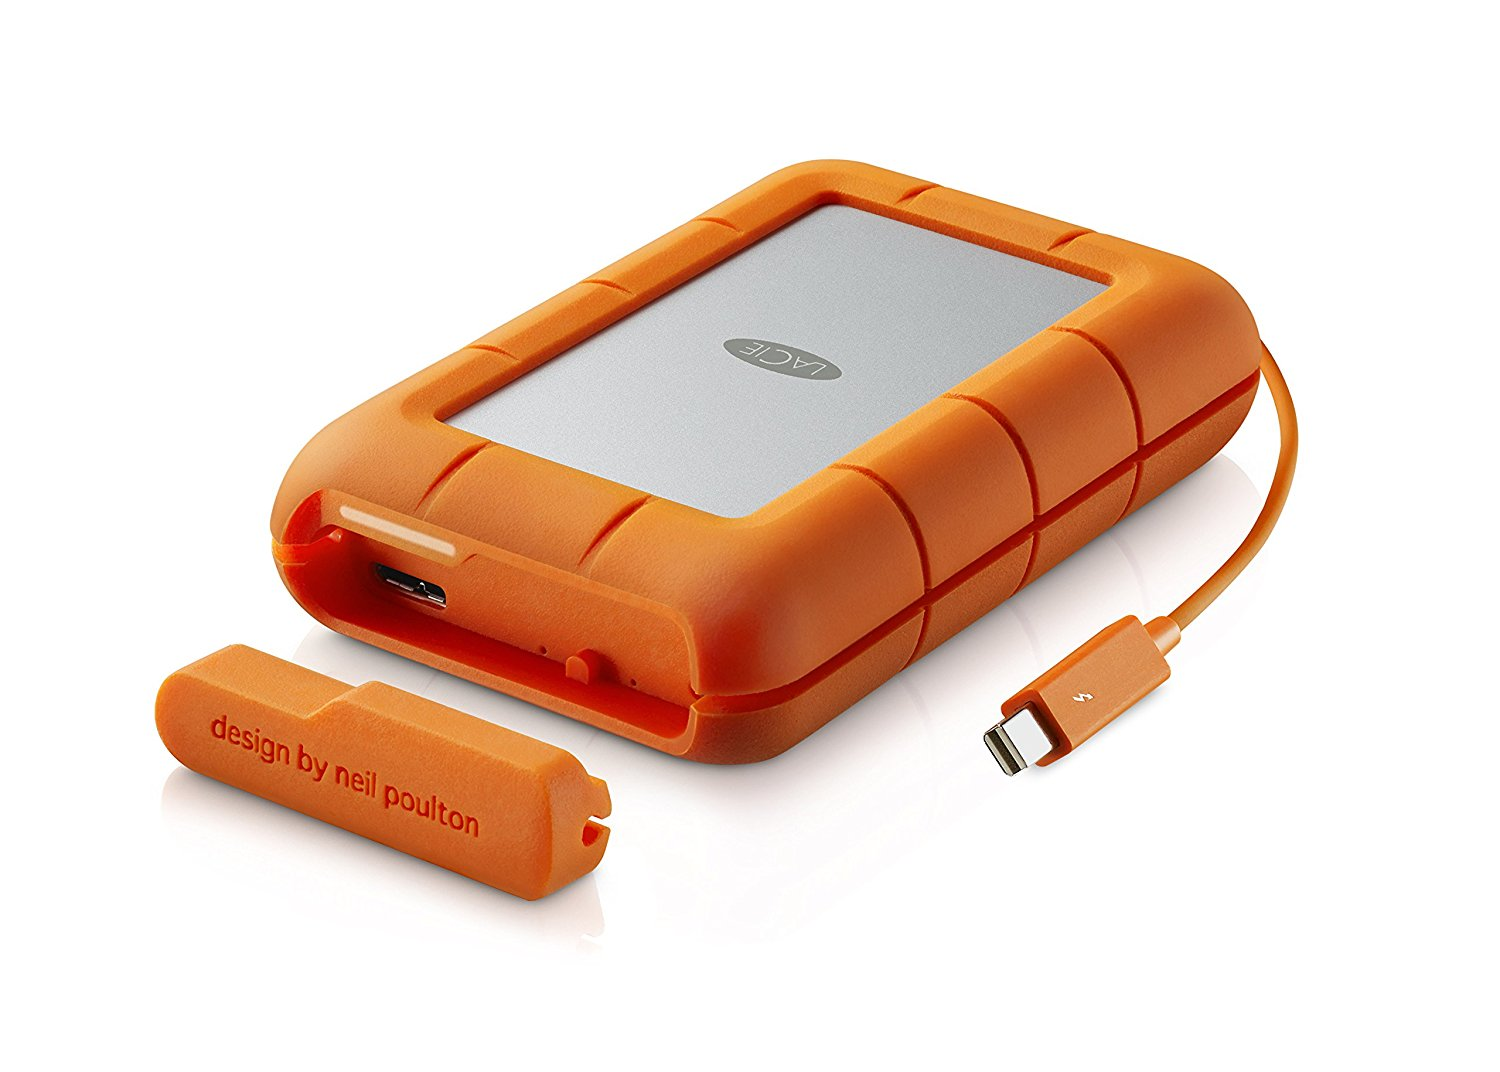 LaCie Rugged RAID, Thunderbolt and USB 3.0 4TB Portable Hard Drive